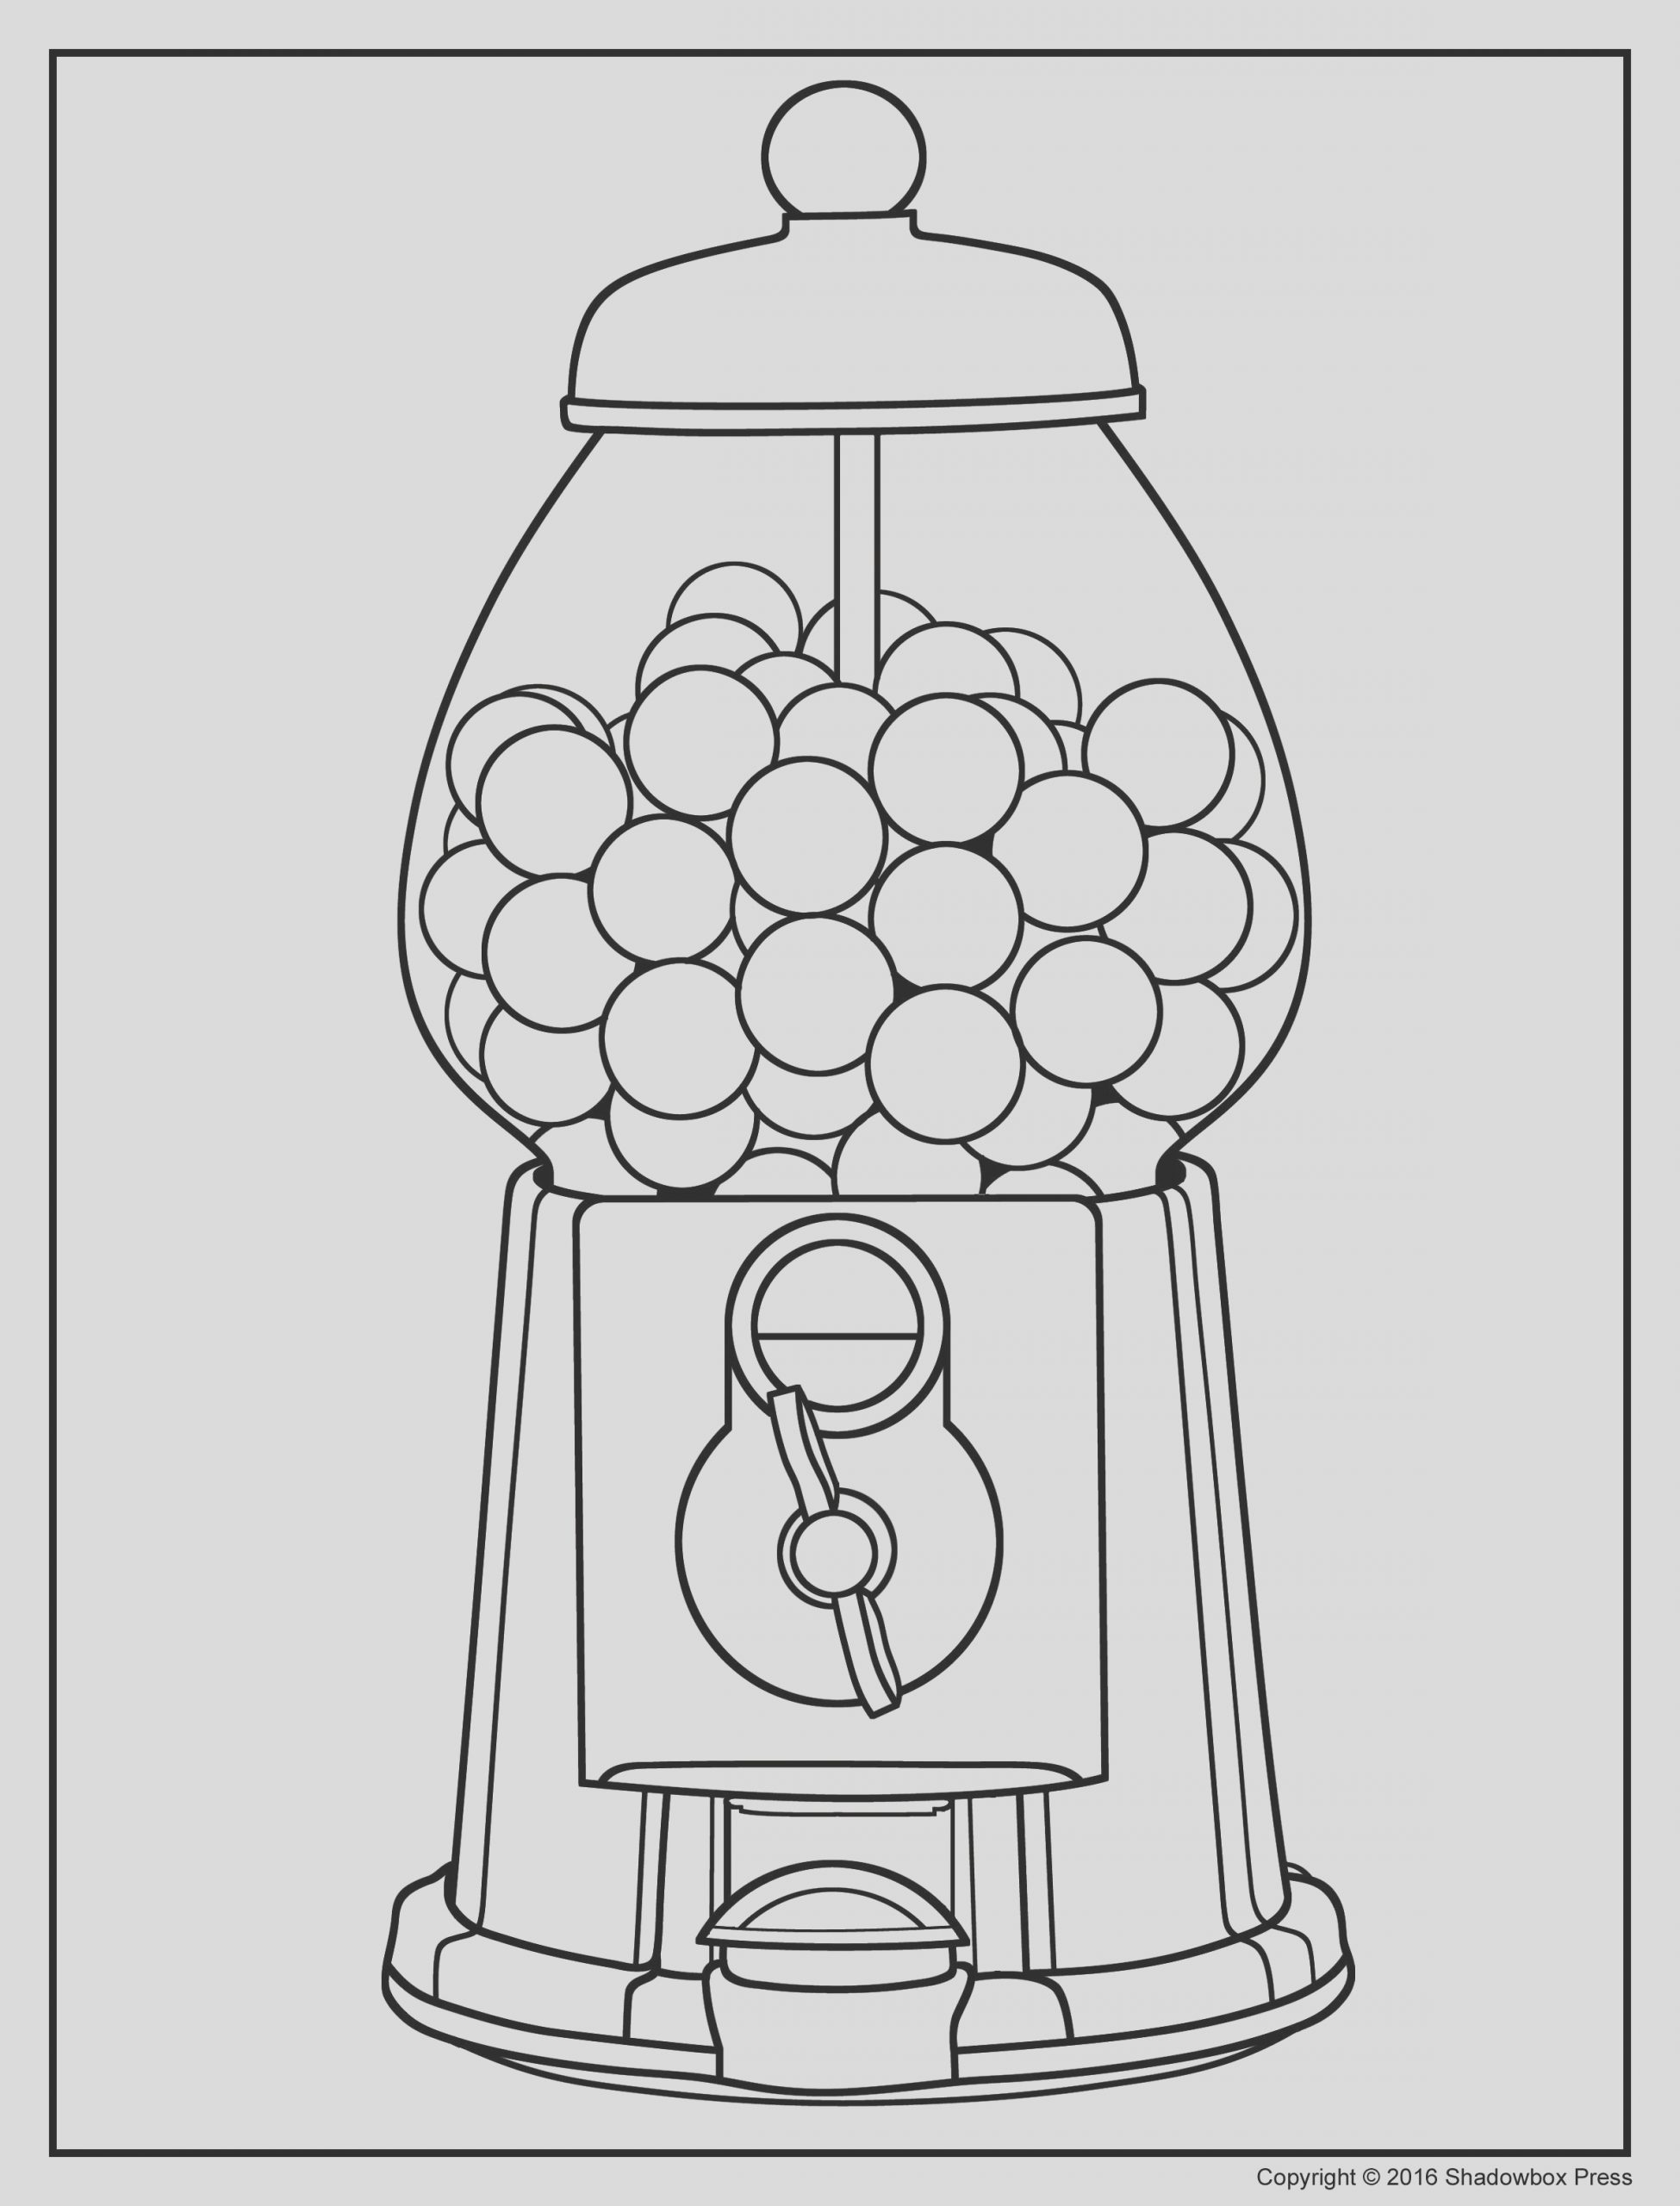 free able coloring pages adults living with memory loss dementia